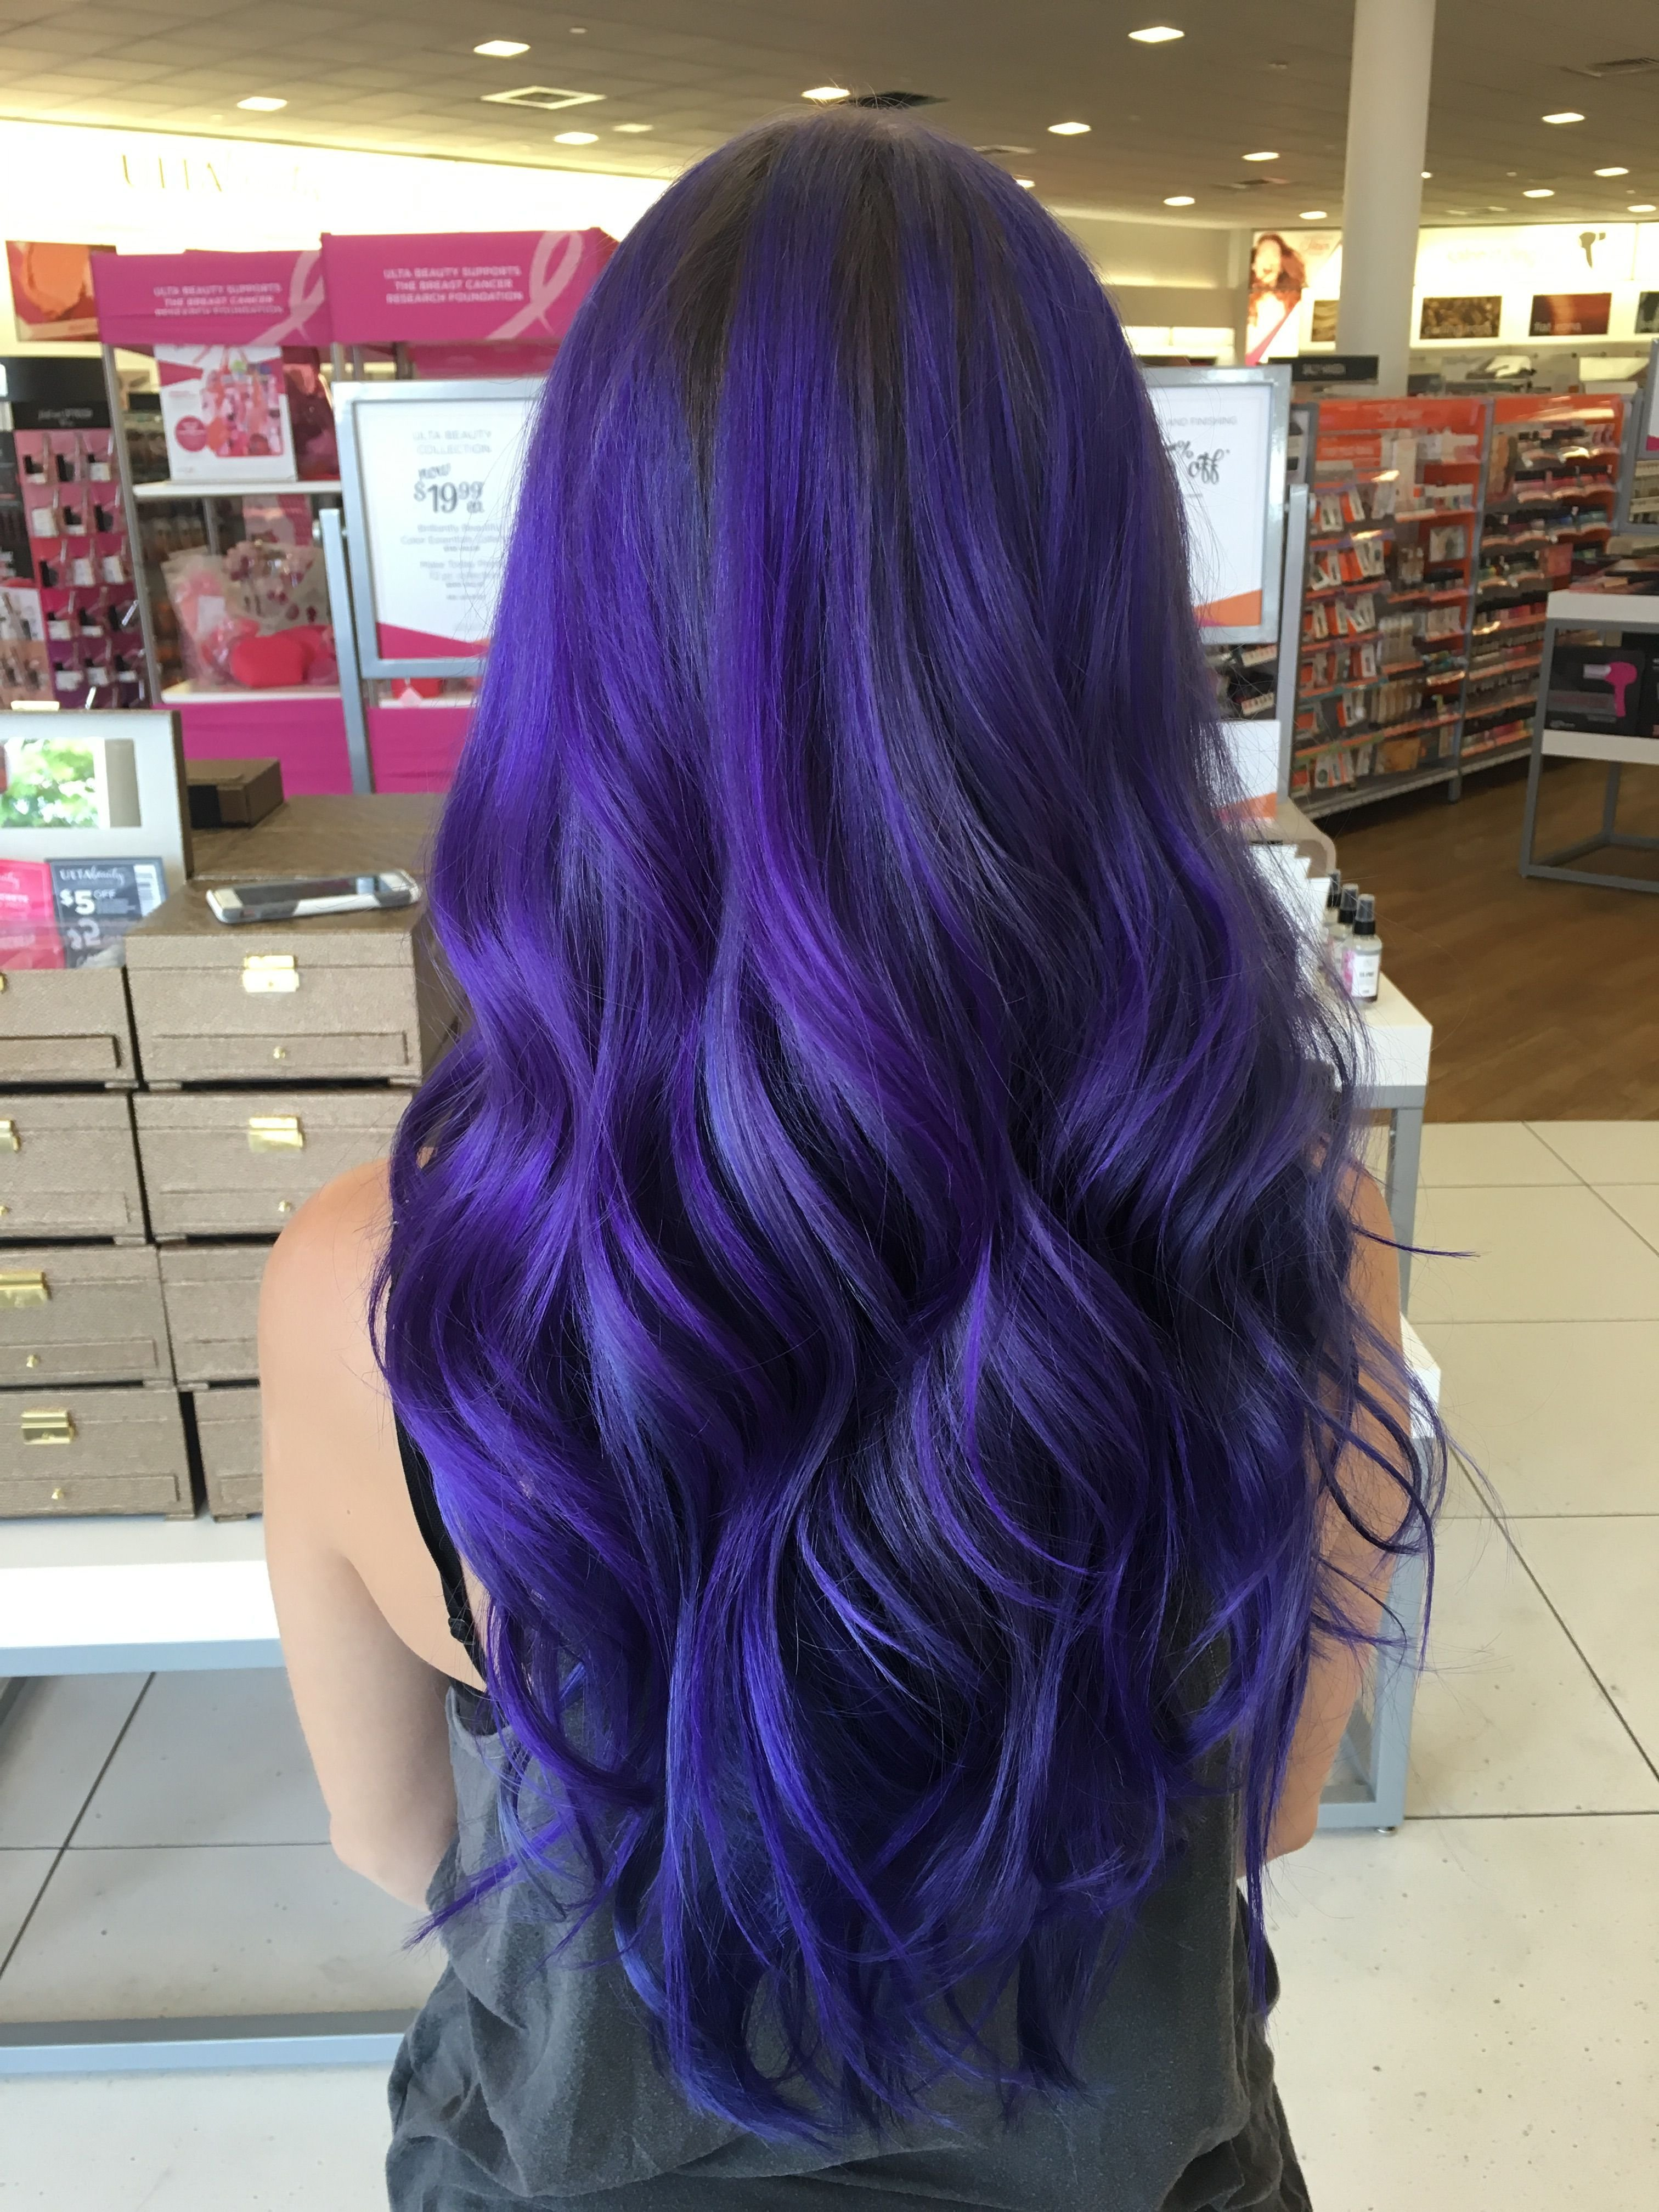 The Best Indigo Purple Blue Hair Done With A Mix Of Pravana Vivids Pictures